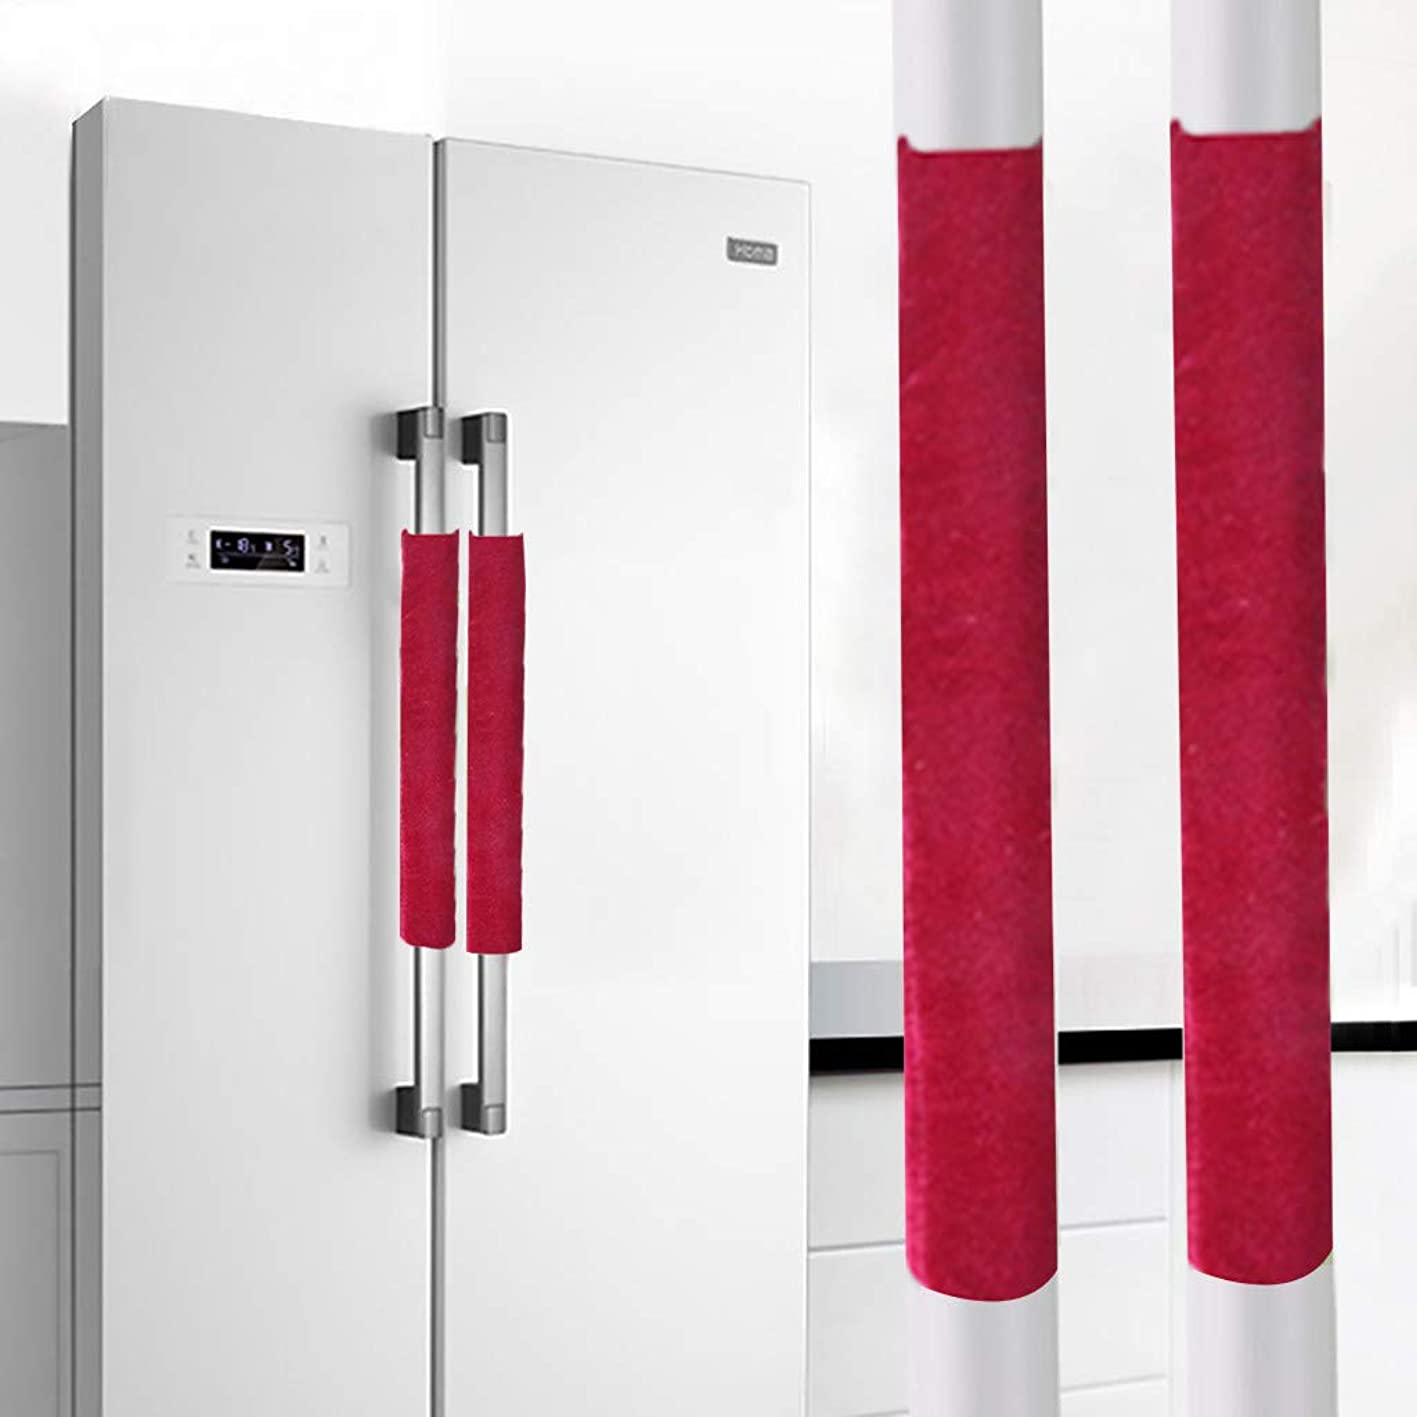 Wffo A Pair Refrigerator Handle Cover Kitchen Appliance Refrigerator Cover?Hotel Door Handle Gloves?Door Handle Gloves?8 Colors Optional (Red) ngyeryexrtt875